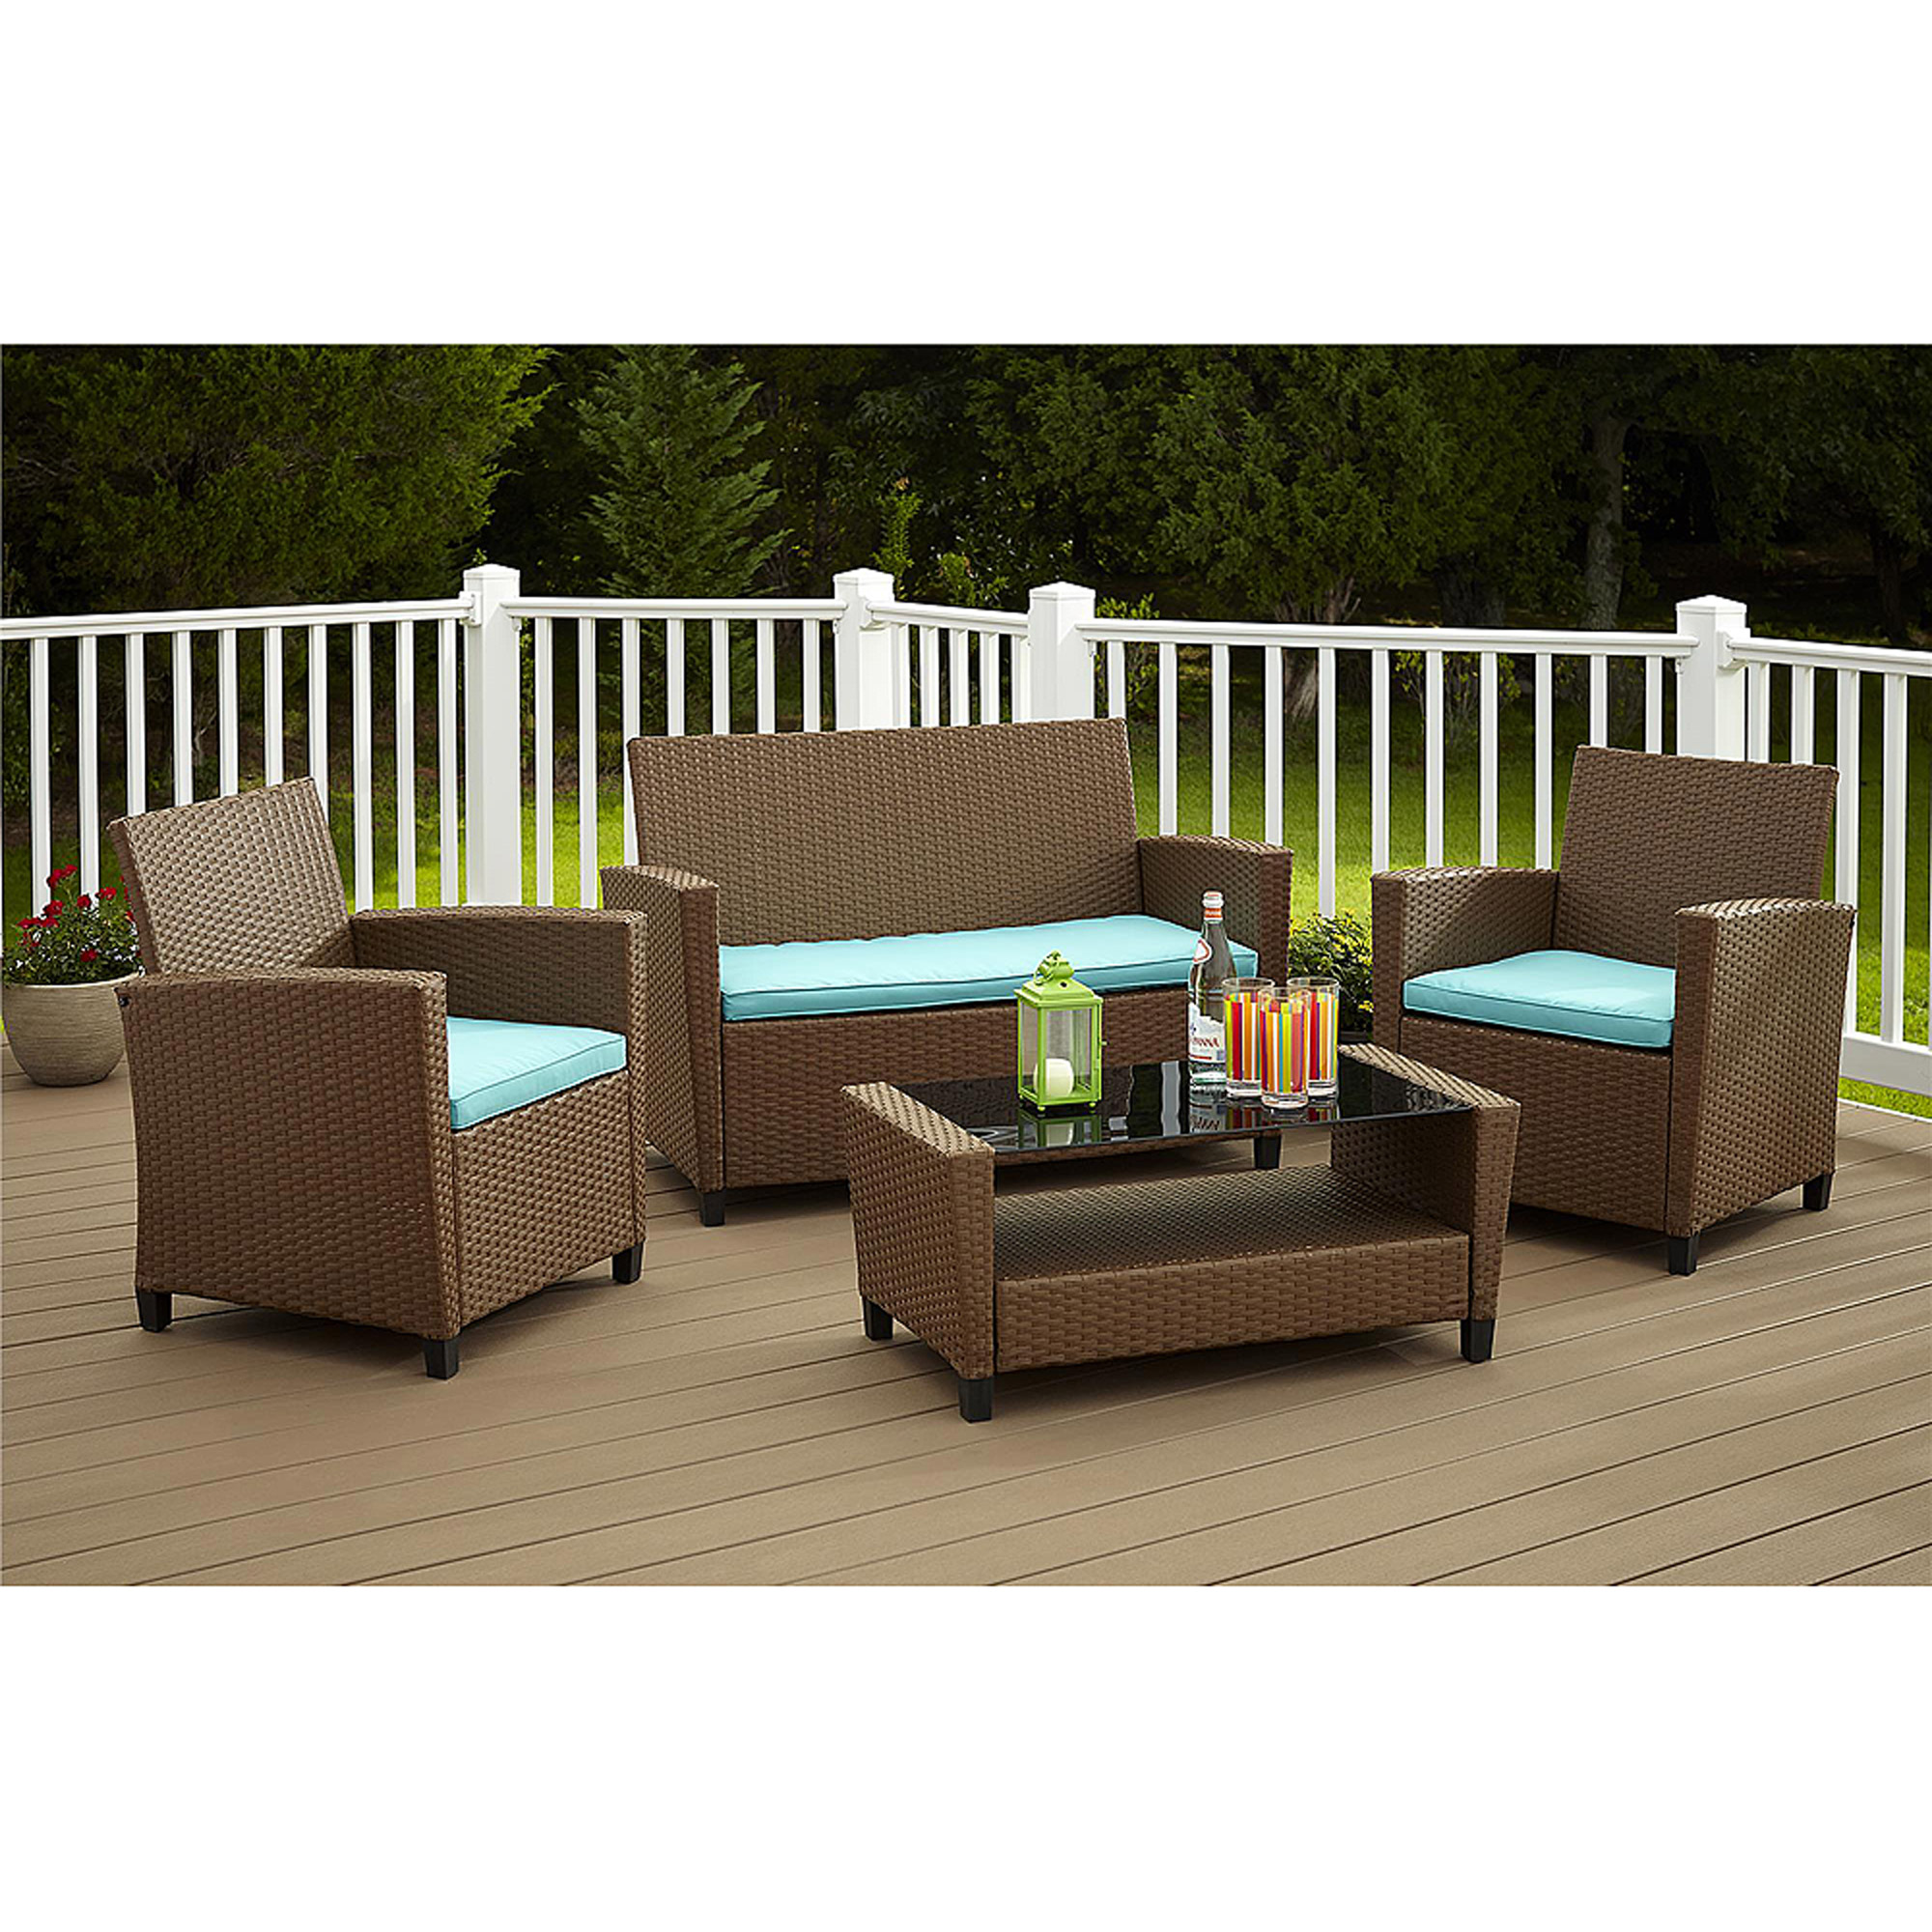 Royal 10 piece outdoor wicker patio furniture set 10b for Outdoor wicker patio furniture